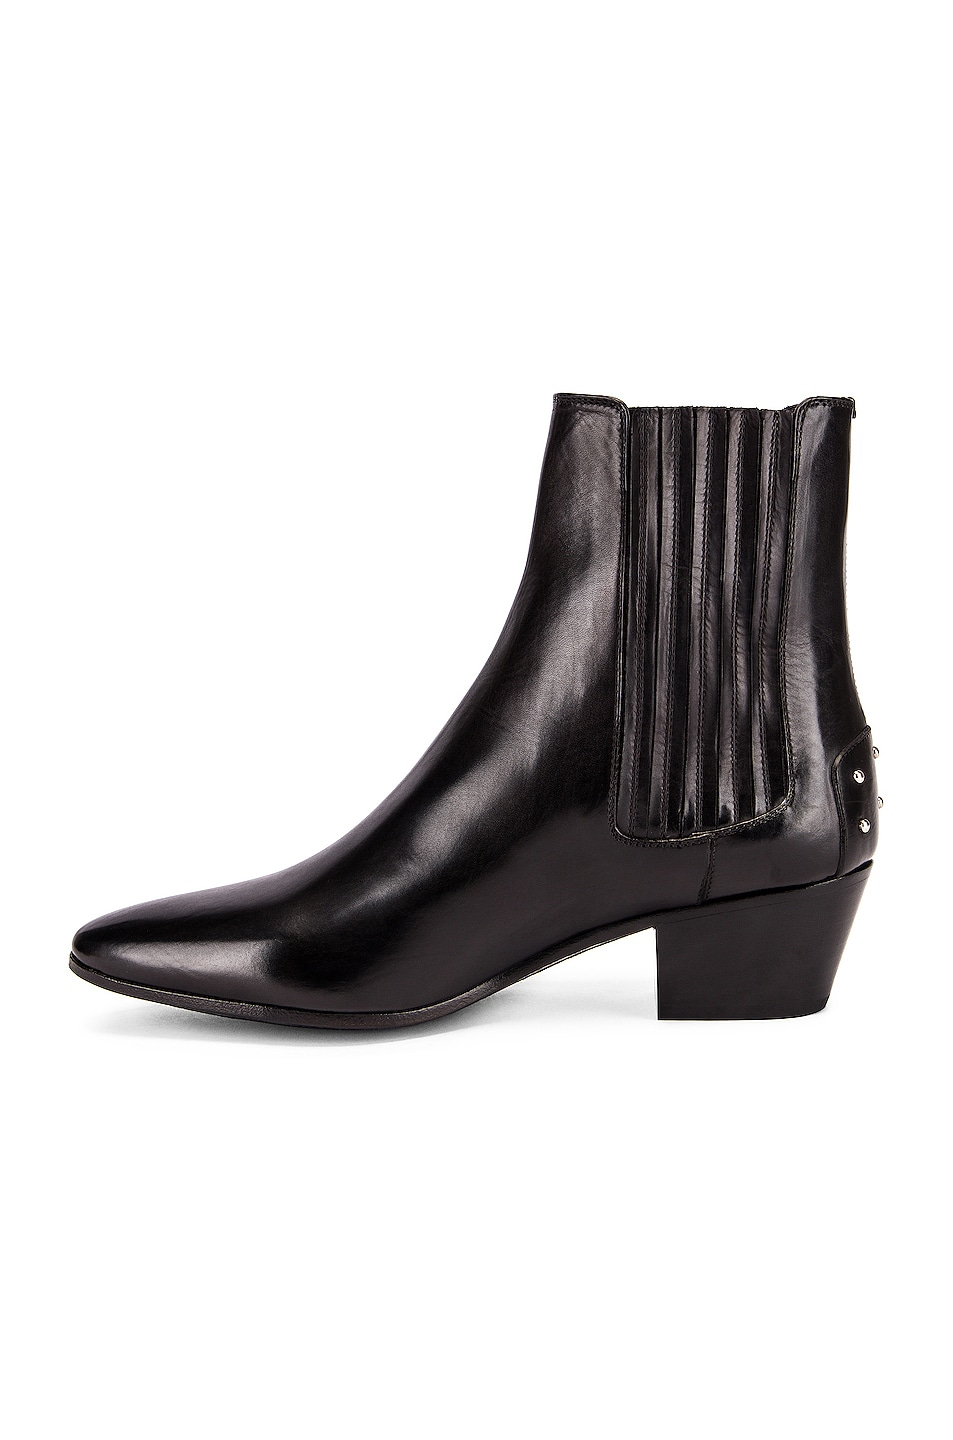 Image 5 of Saint Laurent West Leather Chelsea Boots in Black